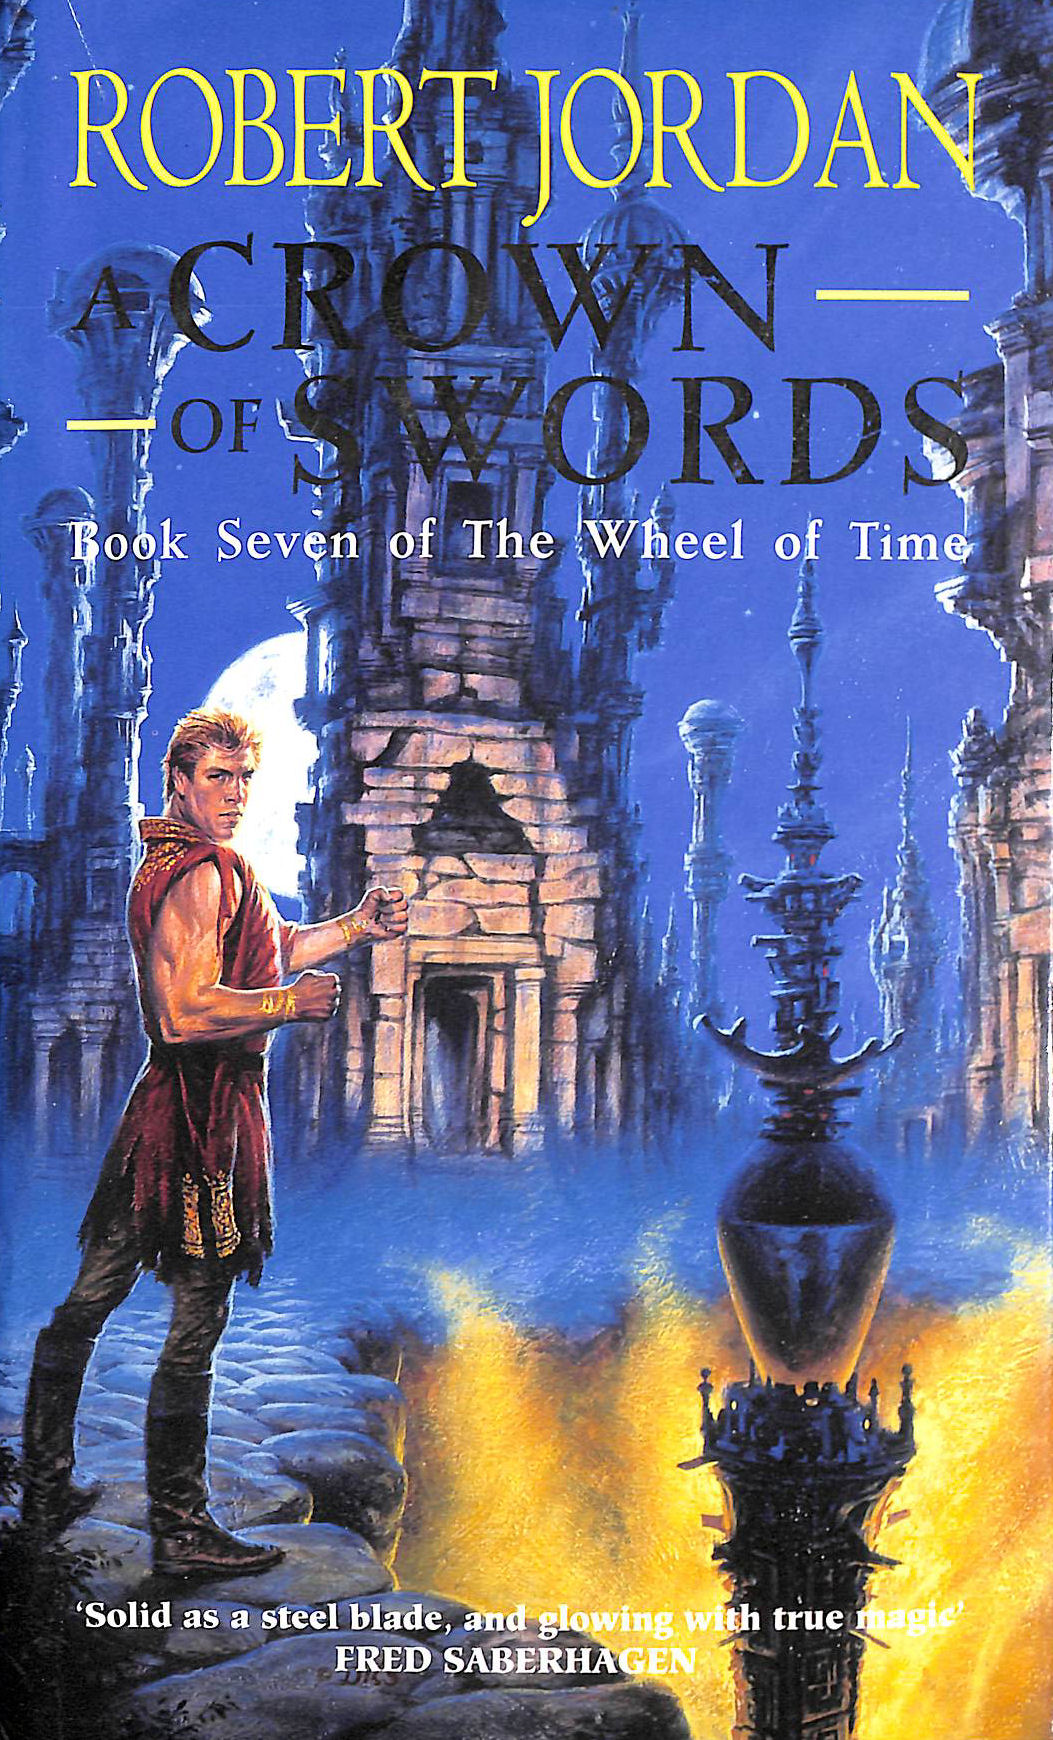 Image for A Crown Of Swords: Book 7 of the Wheel of Time